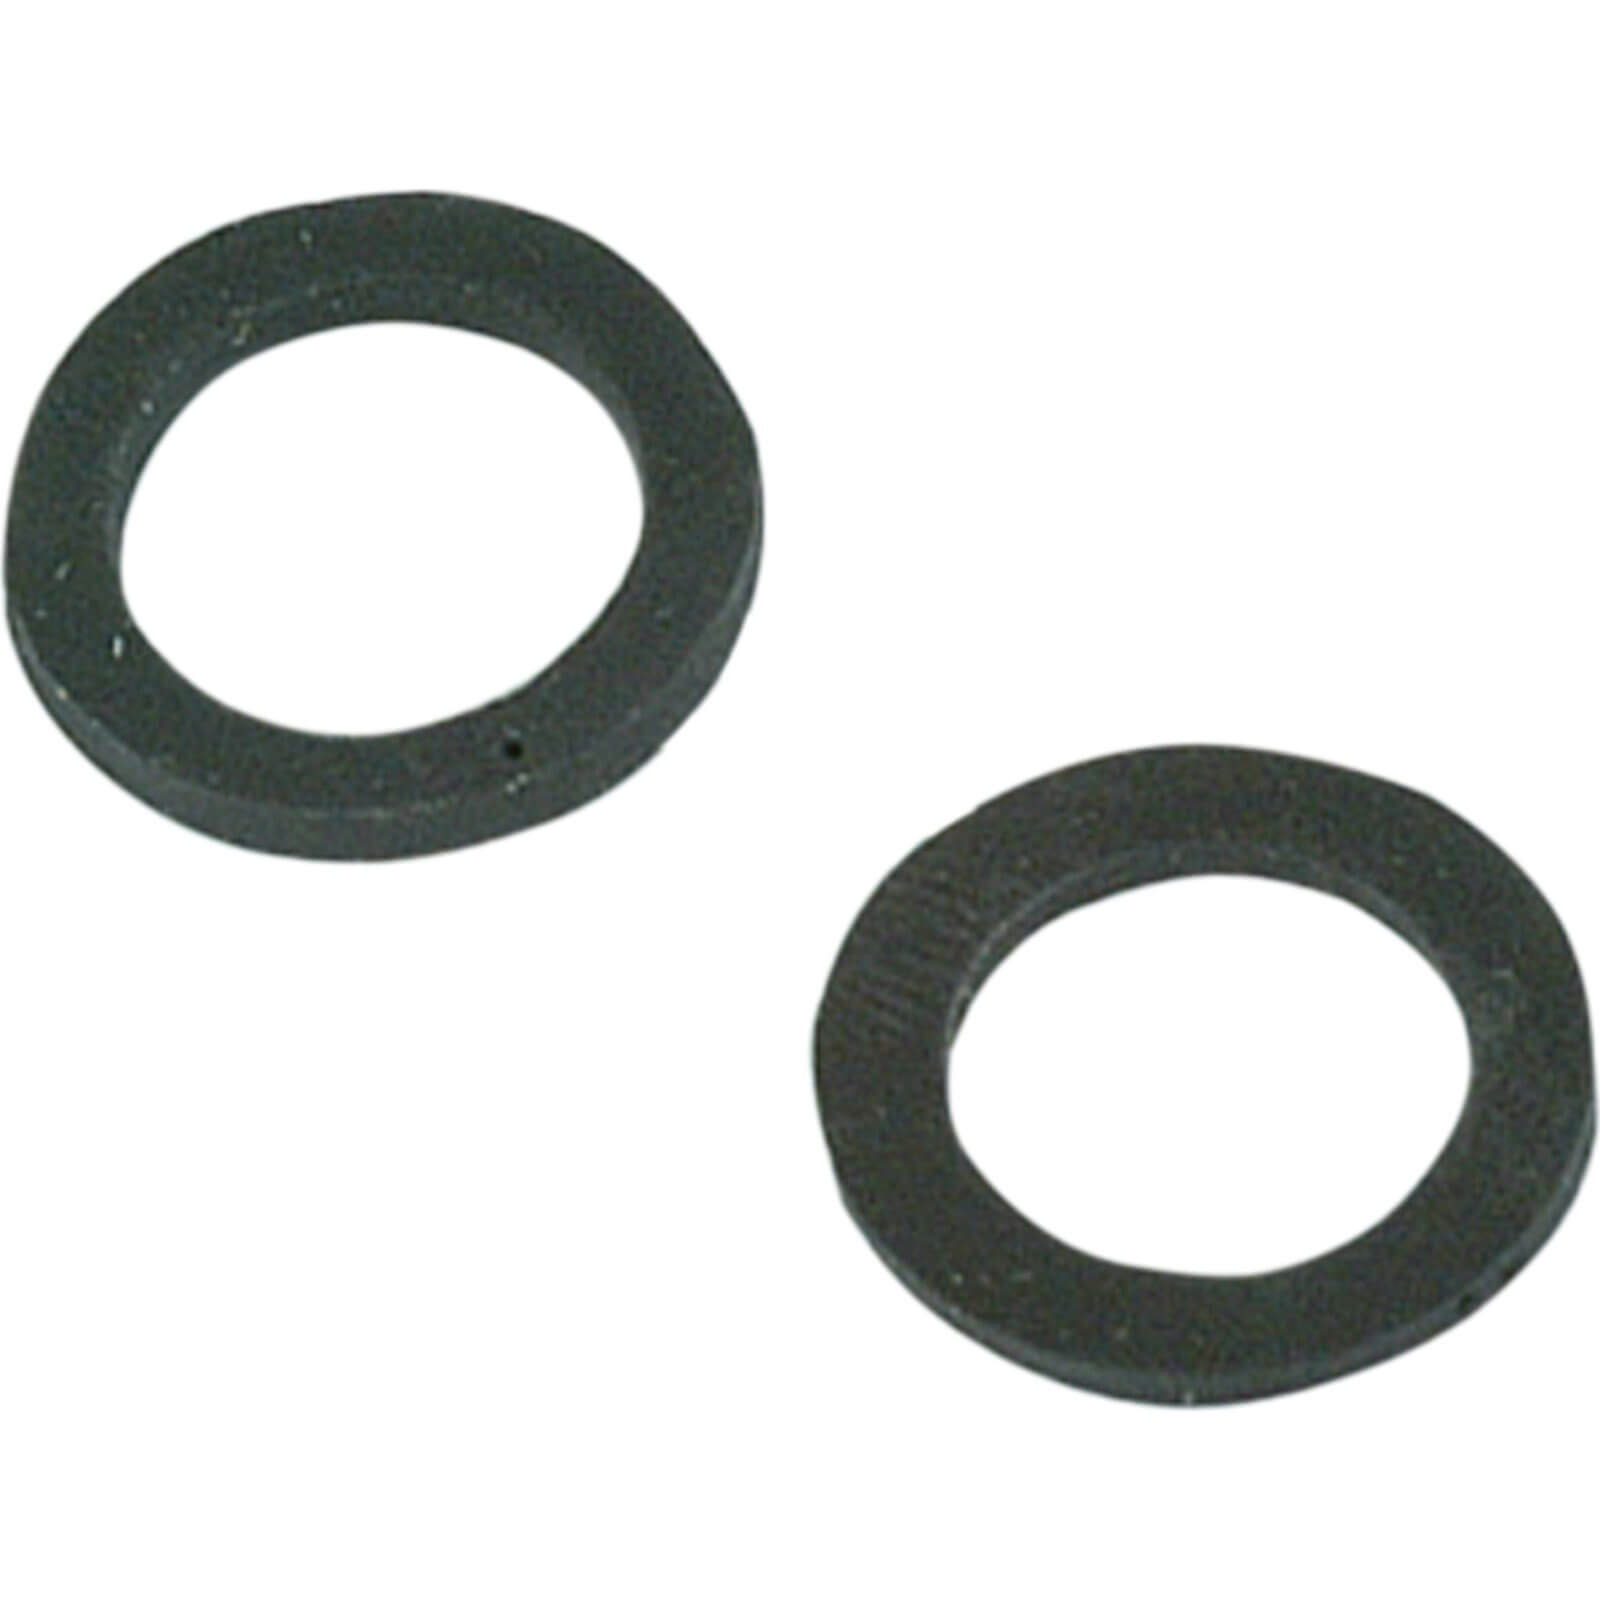 Image of Primus 8303 Washer For Primus Cylinder